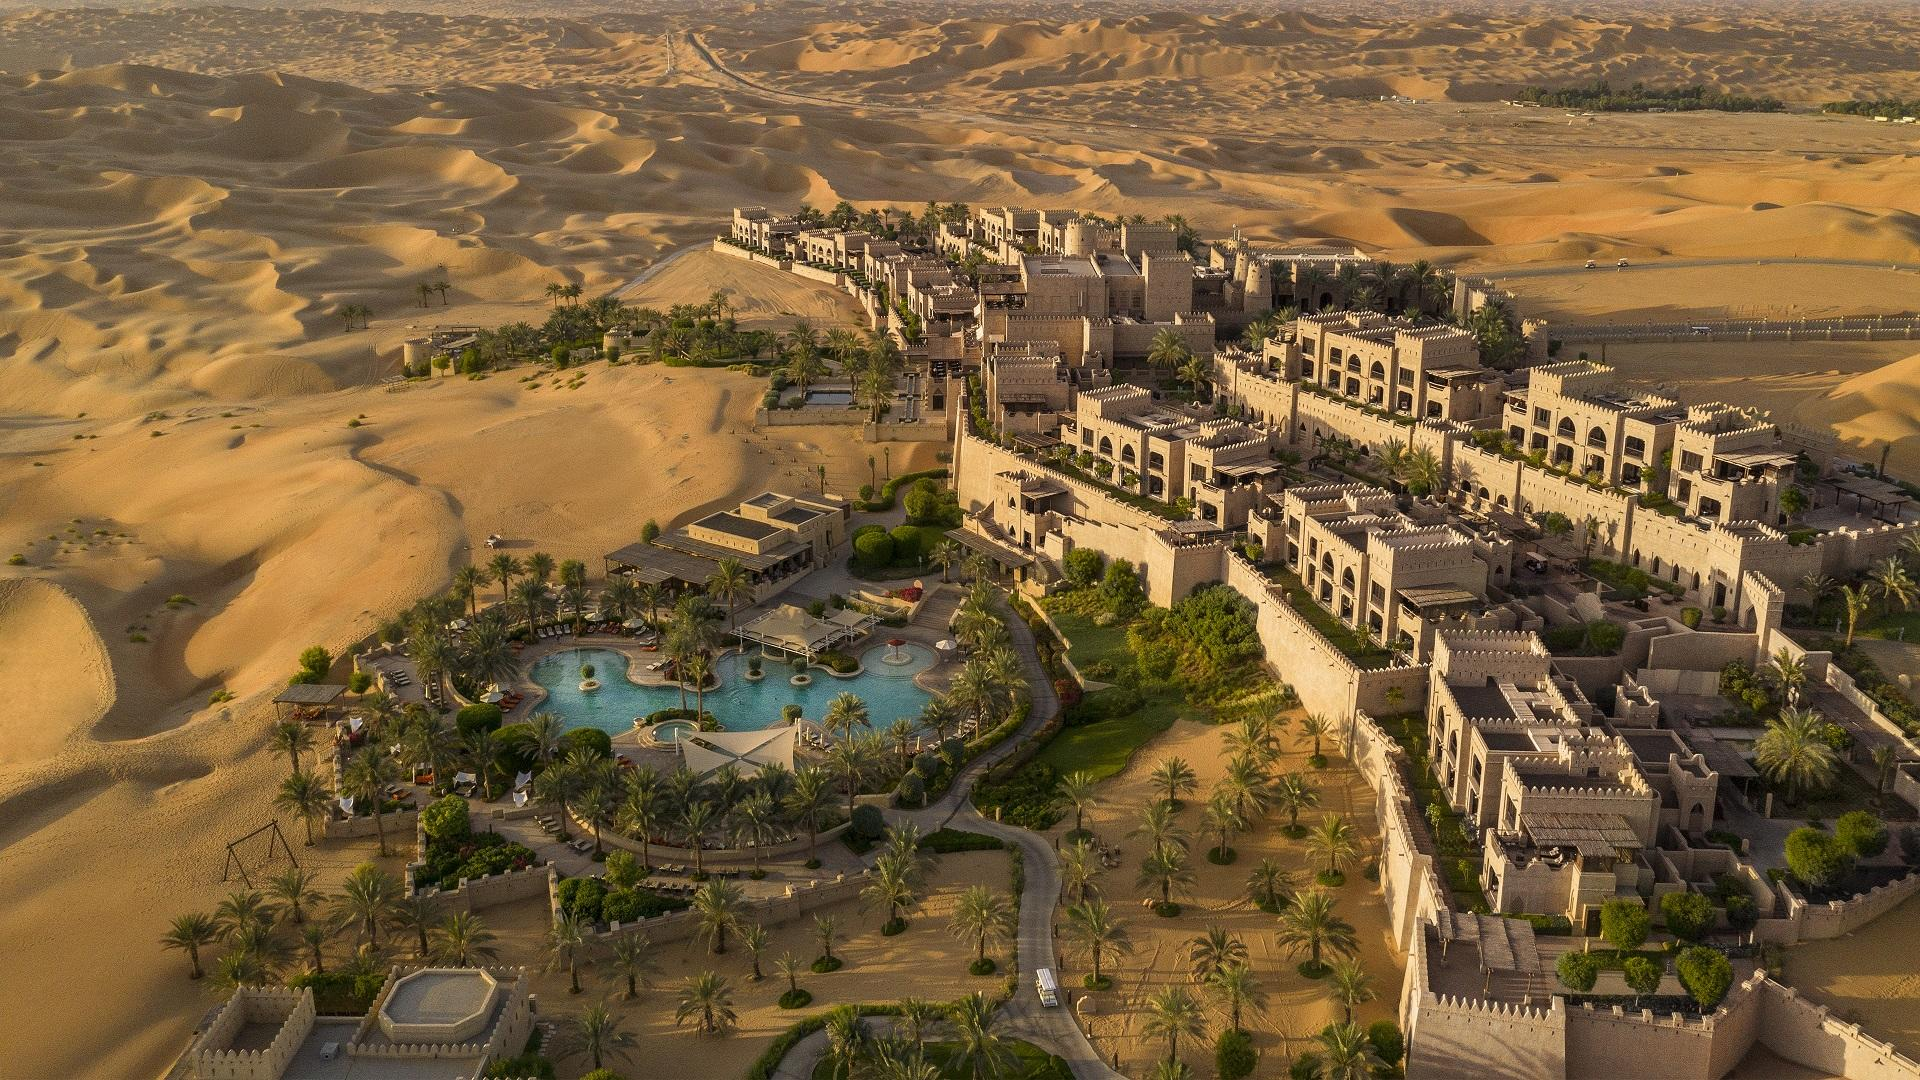 Qasr_Al_Sarab_Desert_Resort_by_Anantara_Exterior_View_Other_Hotel_Exterior_Resort_Pool